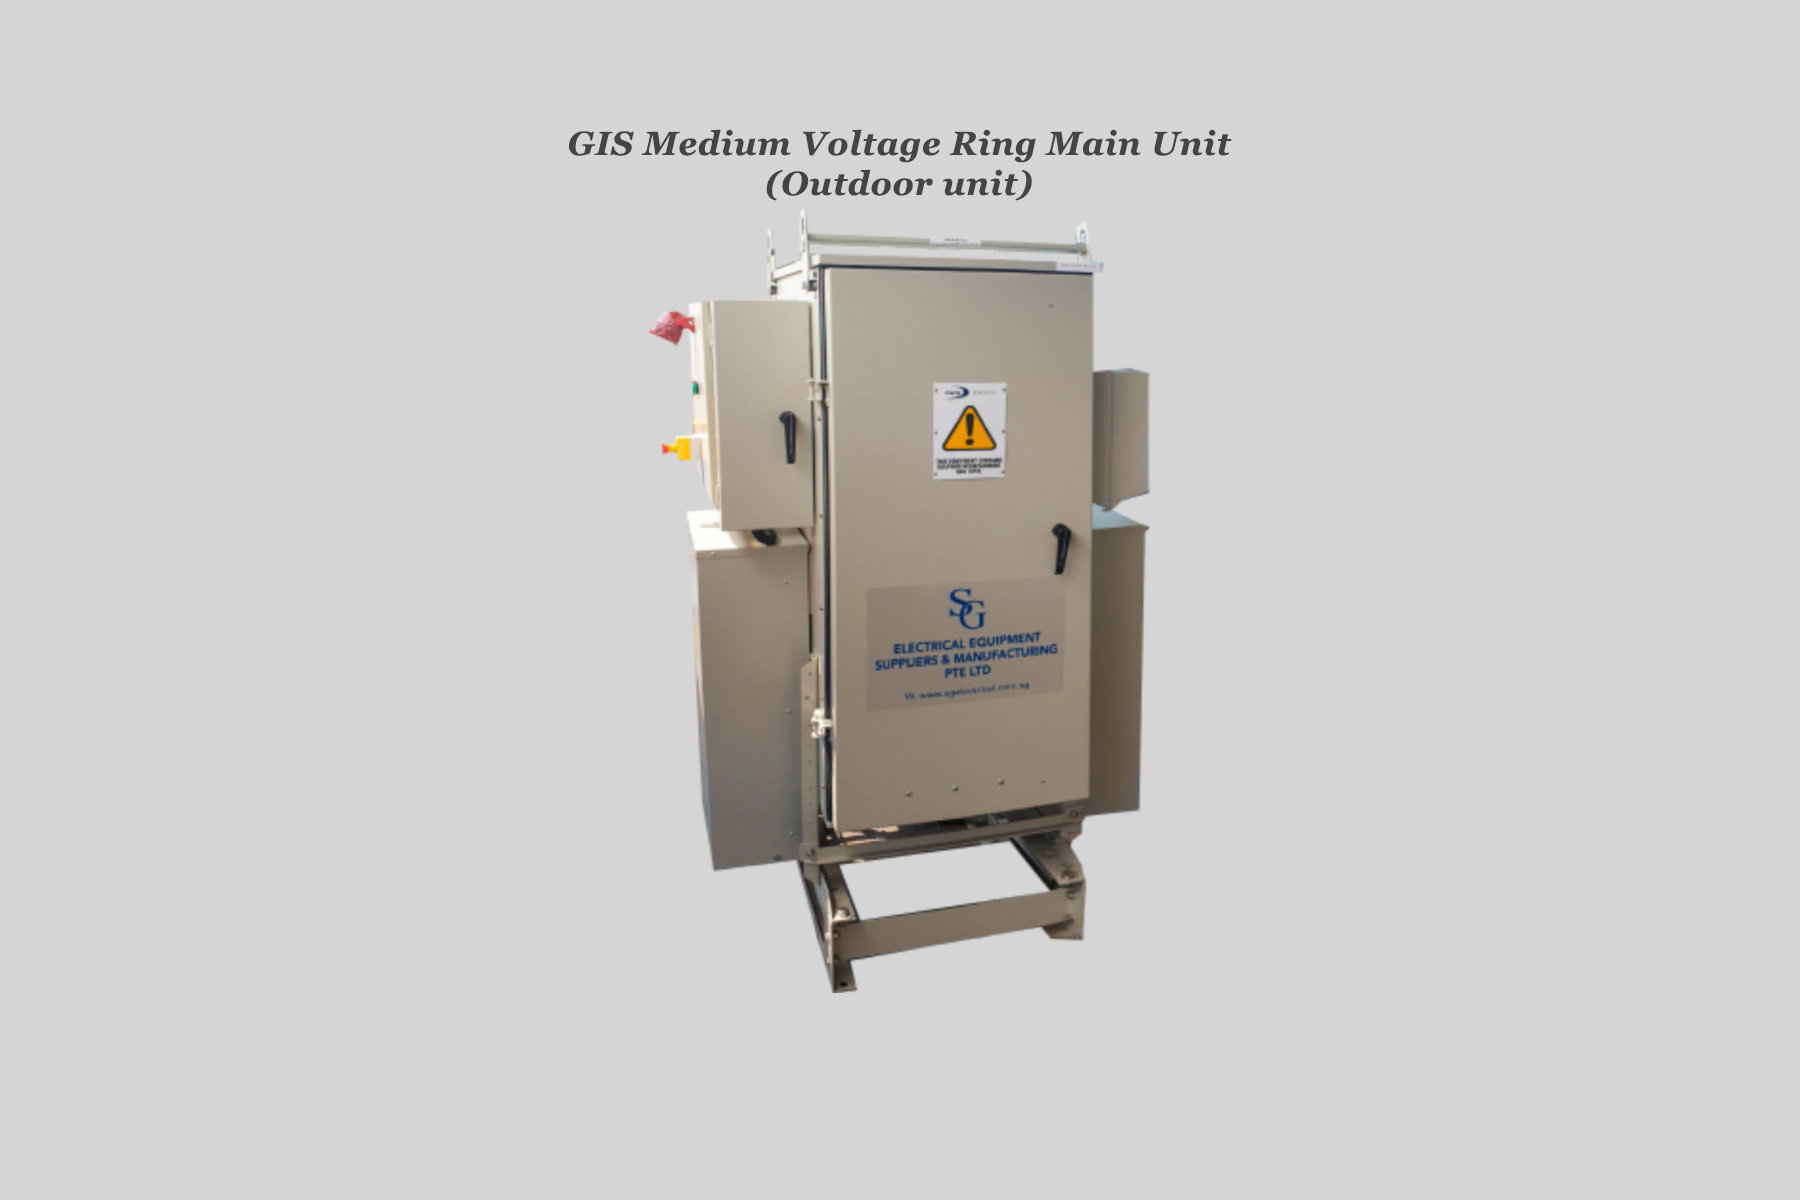 GIS Medium Voltage Ring Main Unit (Outdo